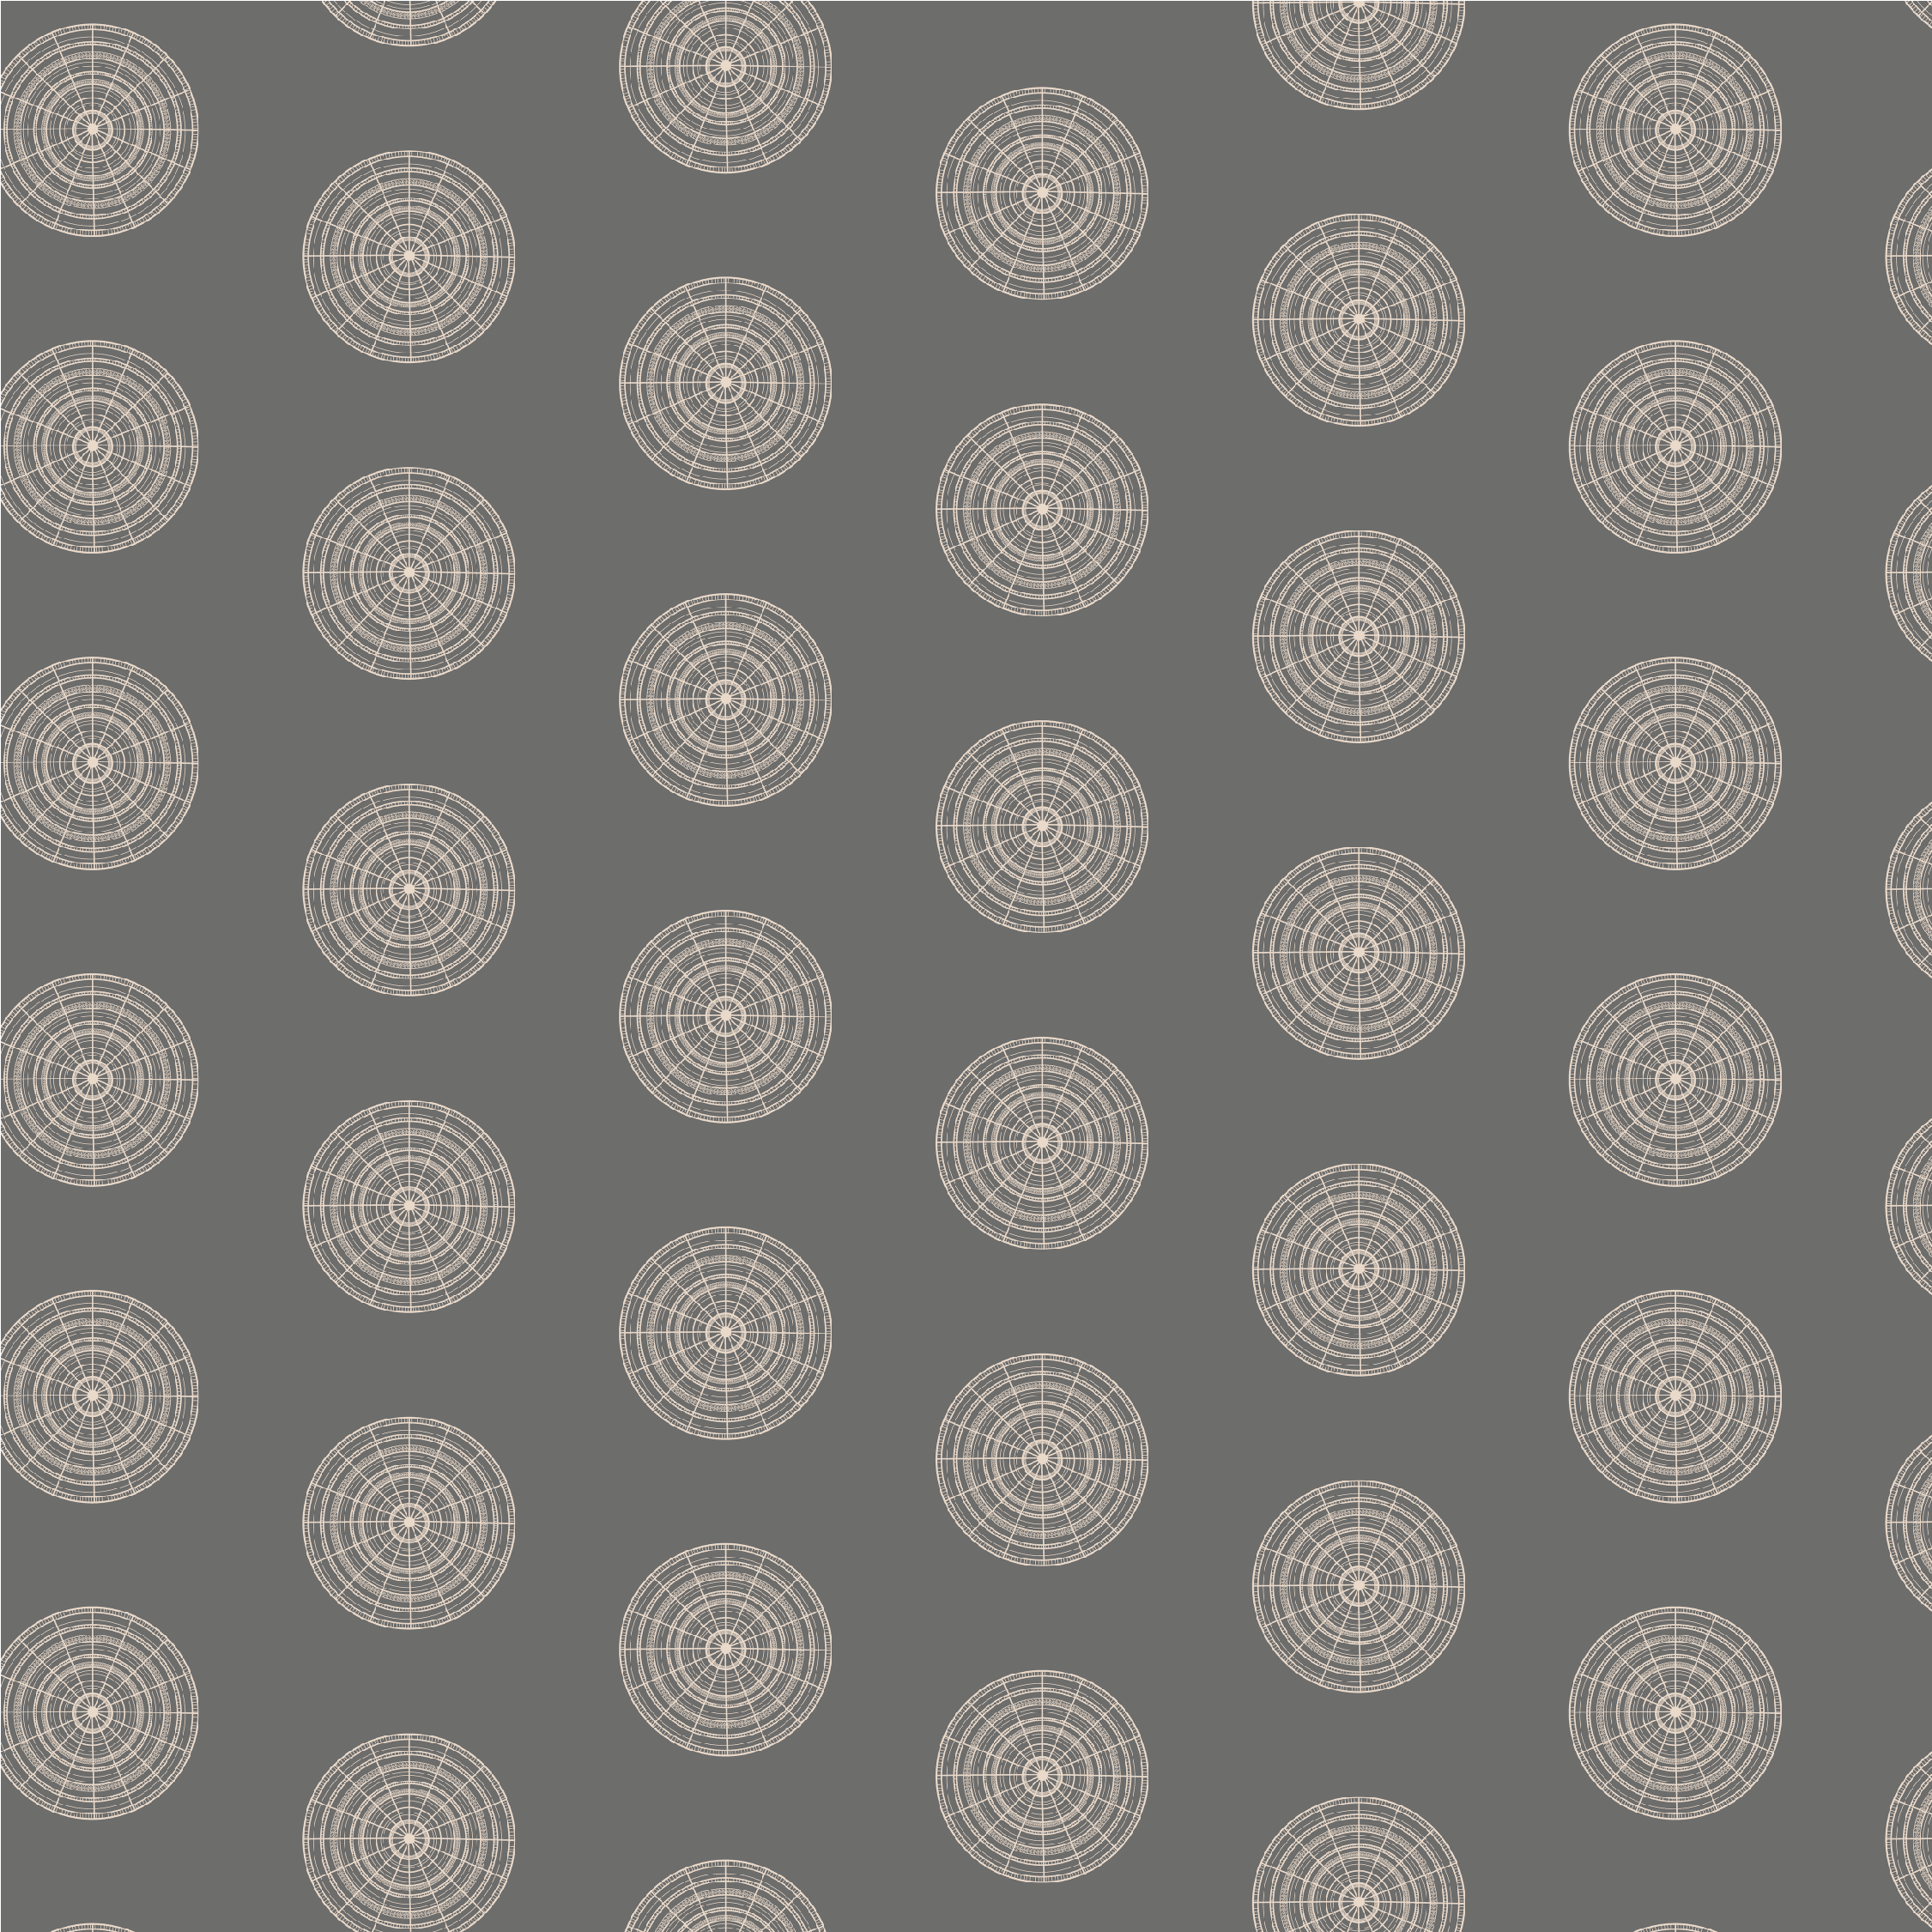 Travel Pro Theory Logo and Pattern Design by Kindly by Kelsea